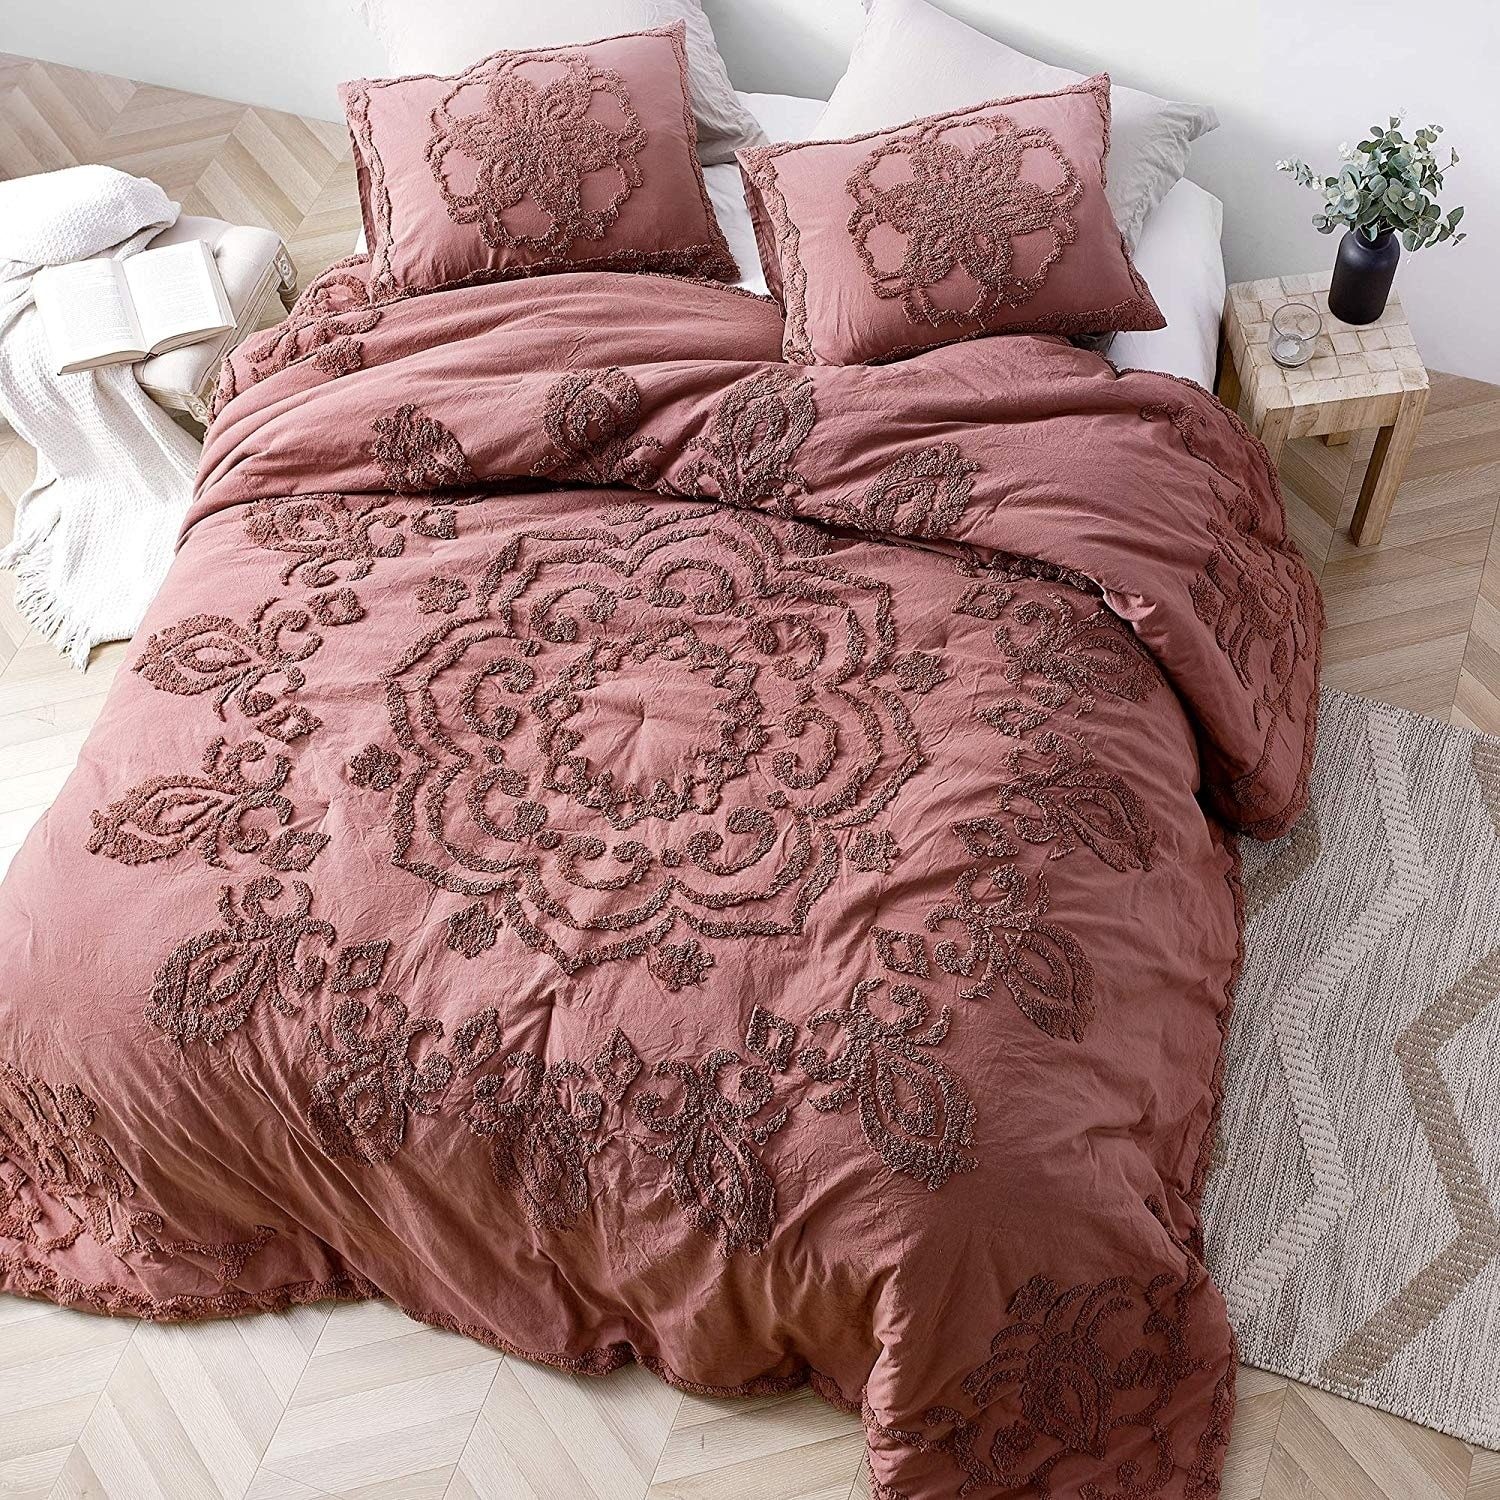 Shop Black Friday Deals On Burgundy Sunset Oversized Comforter Shams Not Included Overstock 29663417 Twin Xl